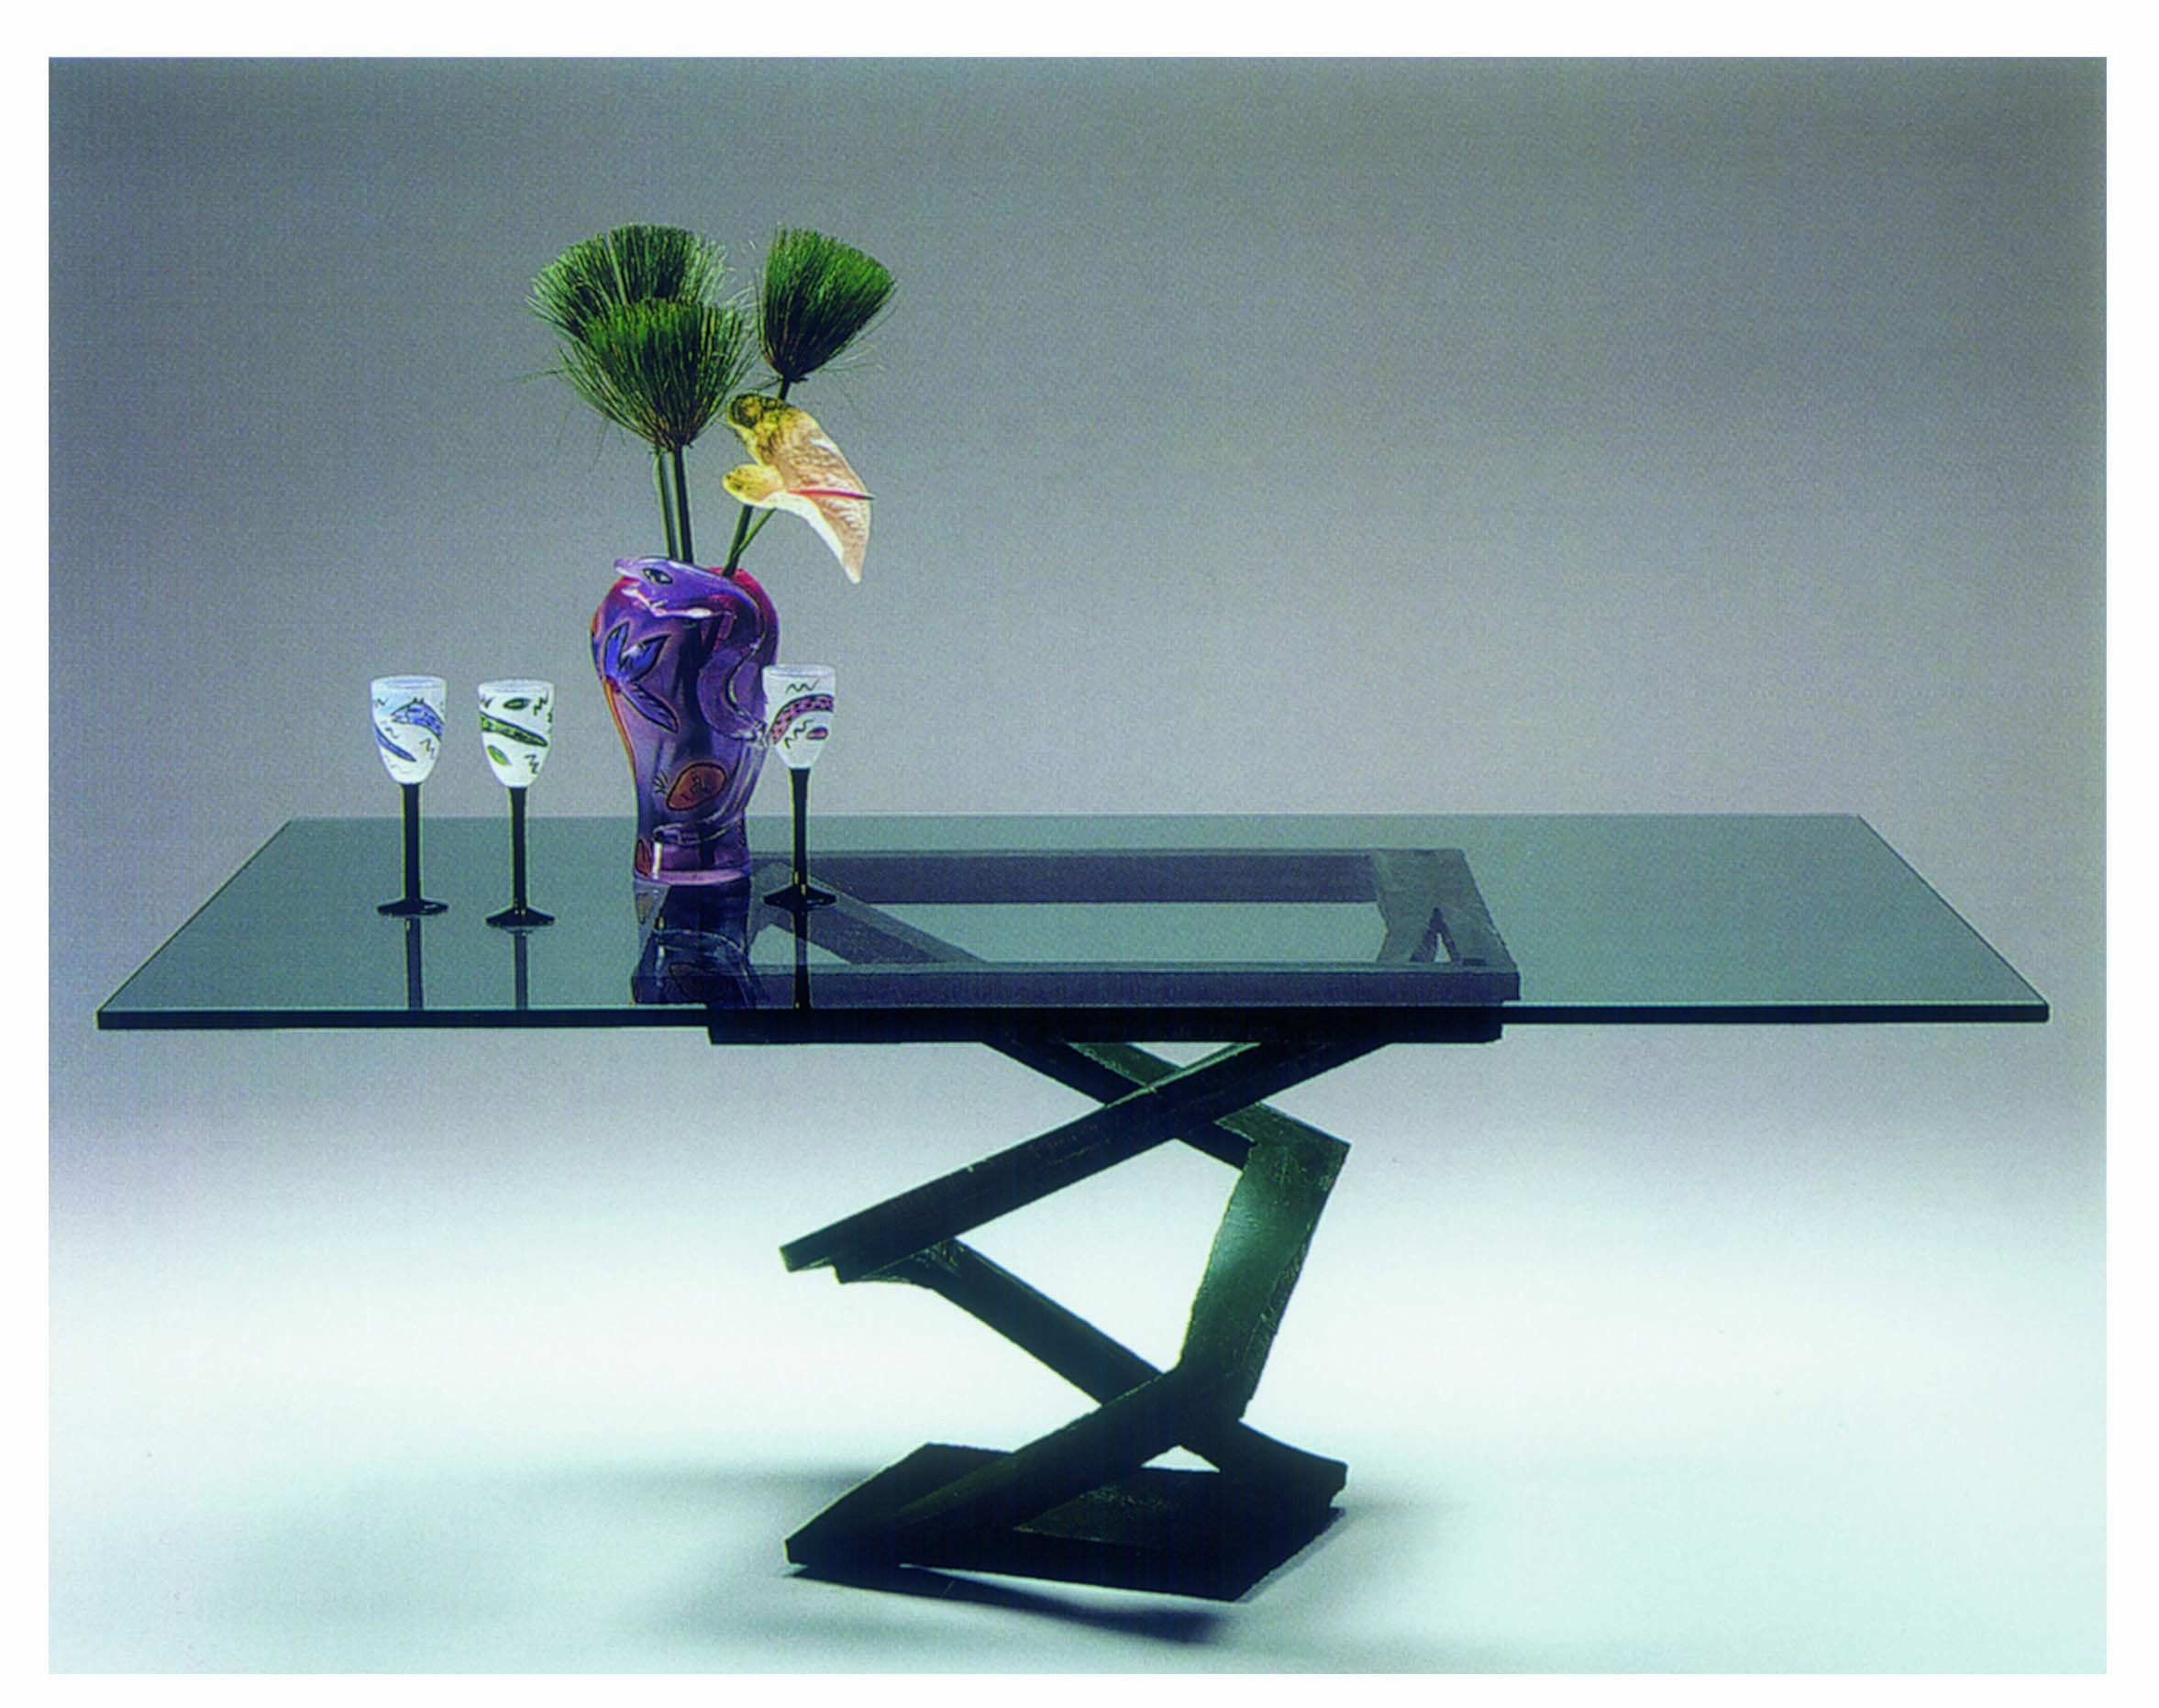 Roche Bobois Fleur De Fer Dining Table Designed By Maurice Barilone 1980s Roche Table Maurice